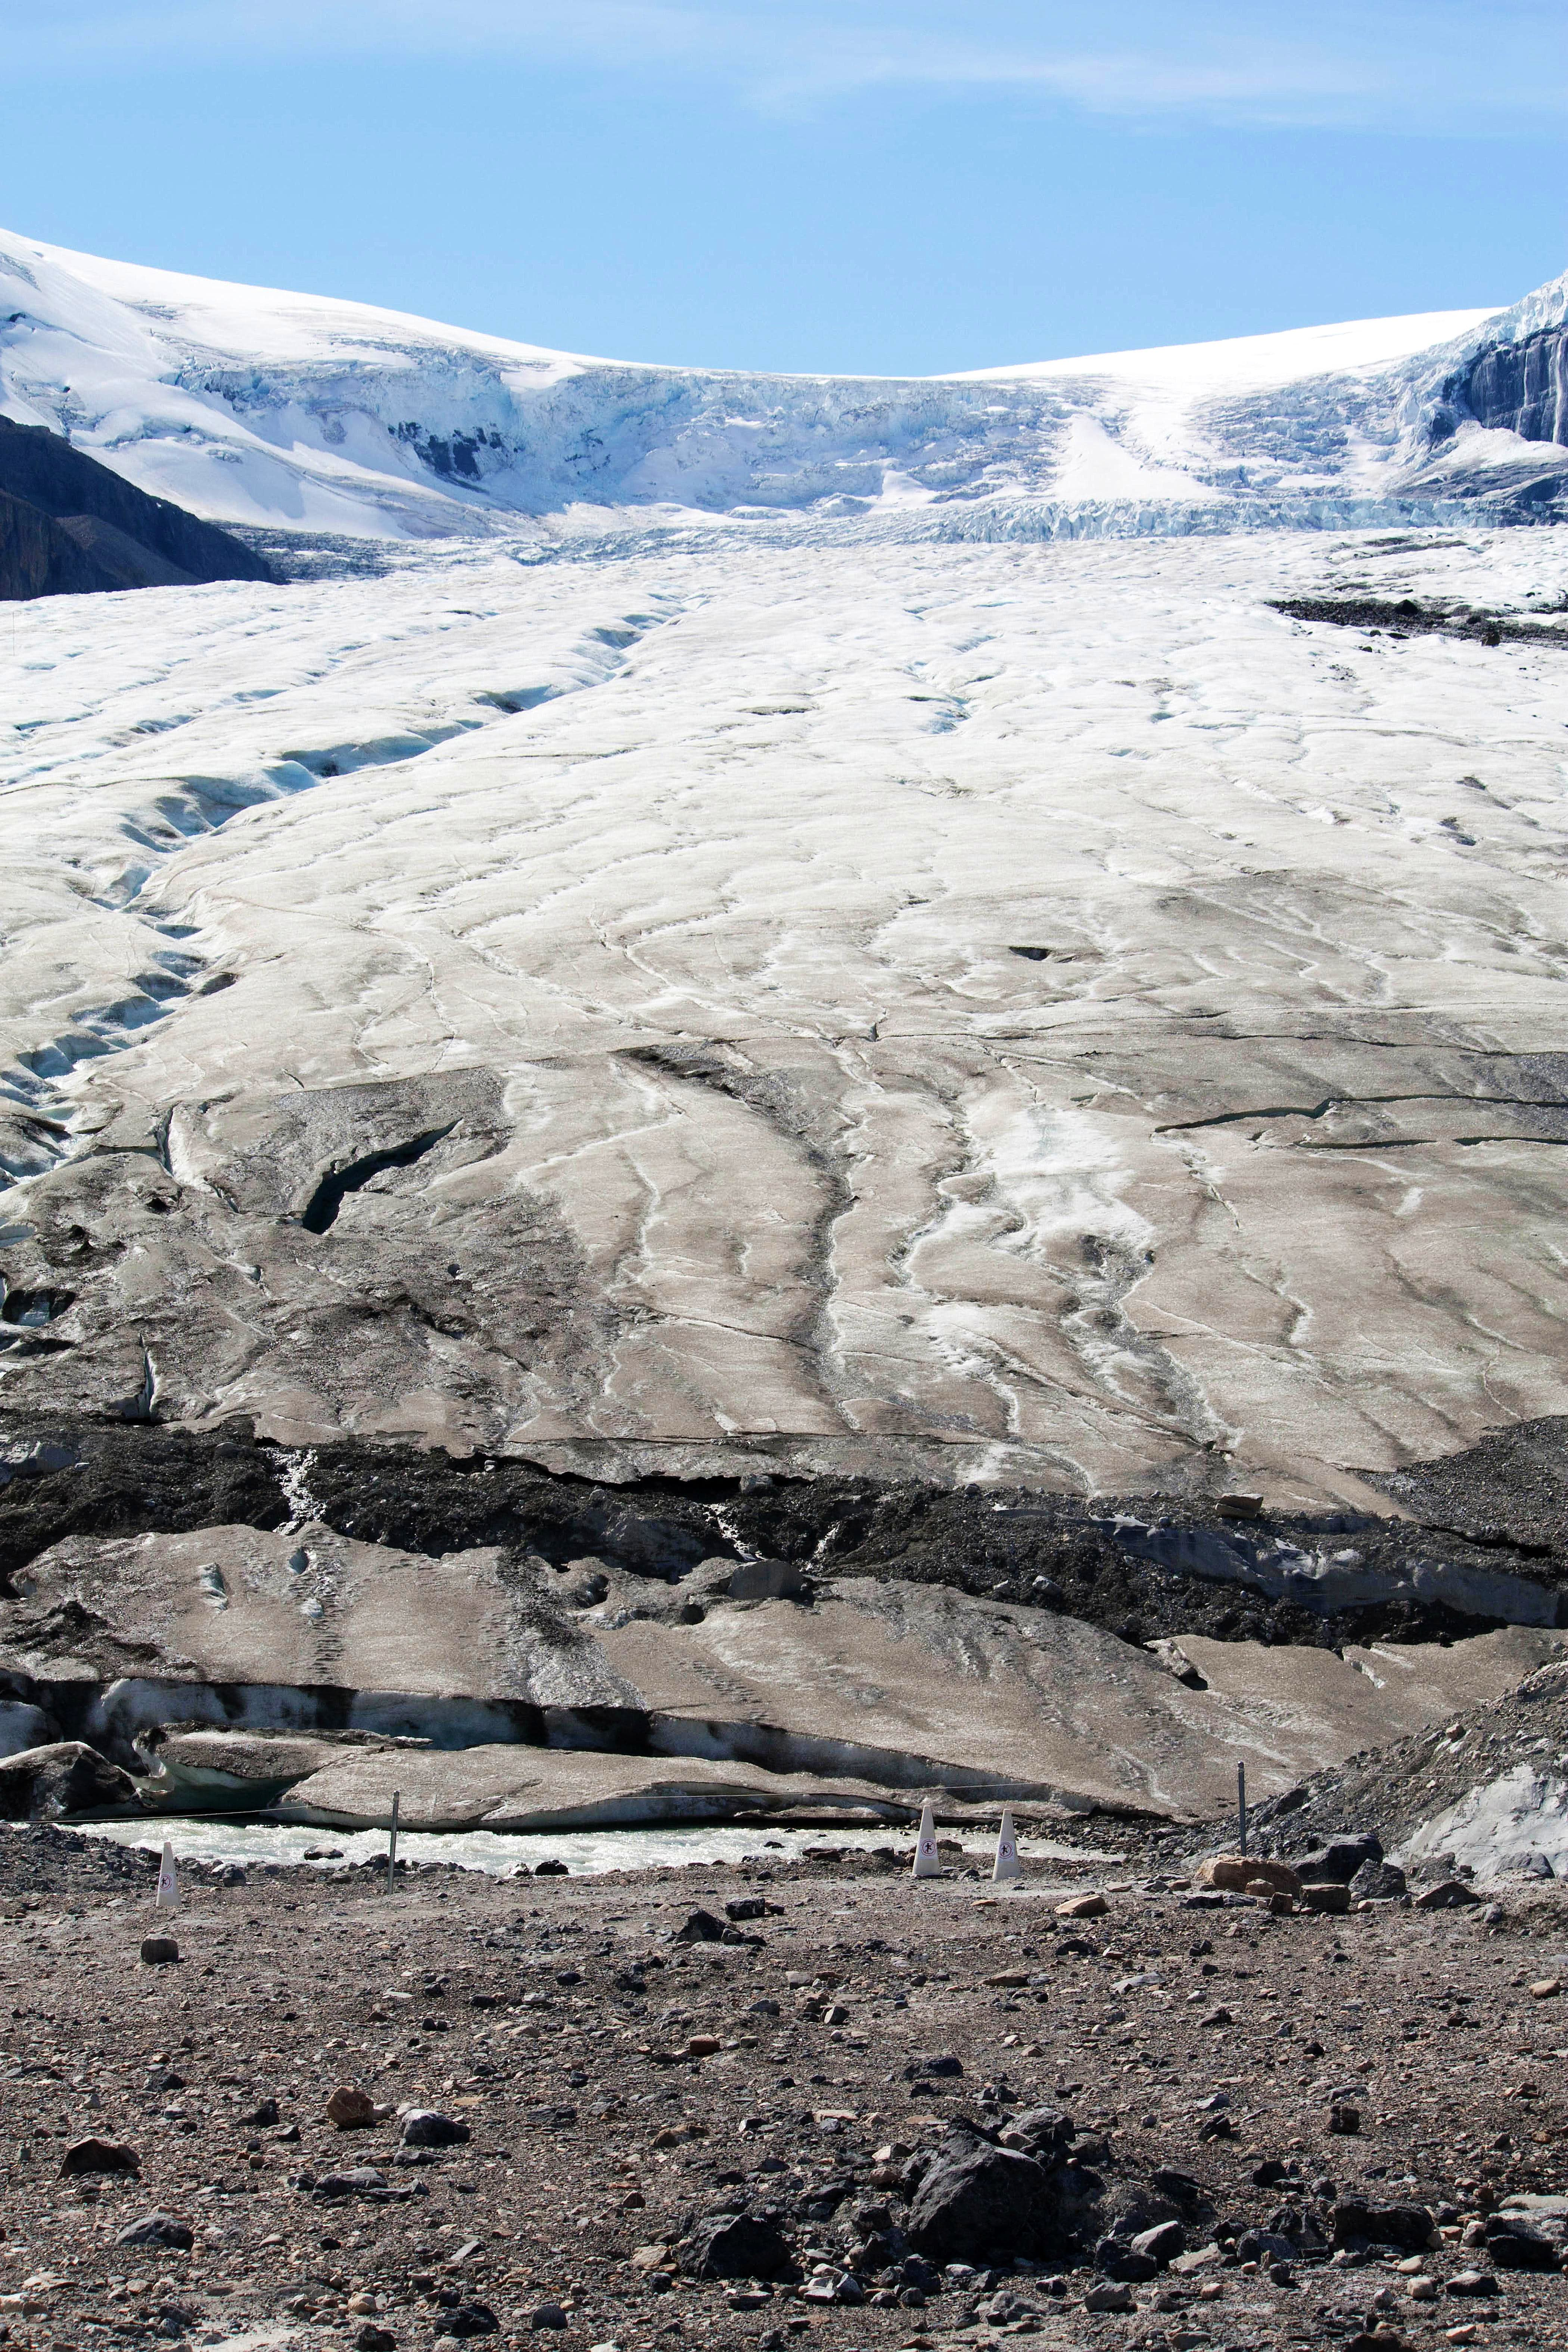 Hike to Toe of Athabasca Glacier